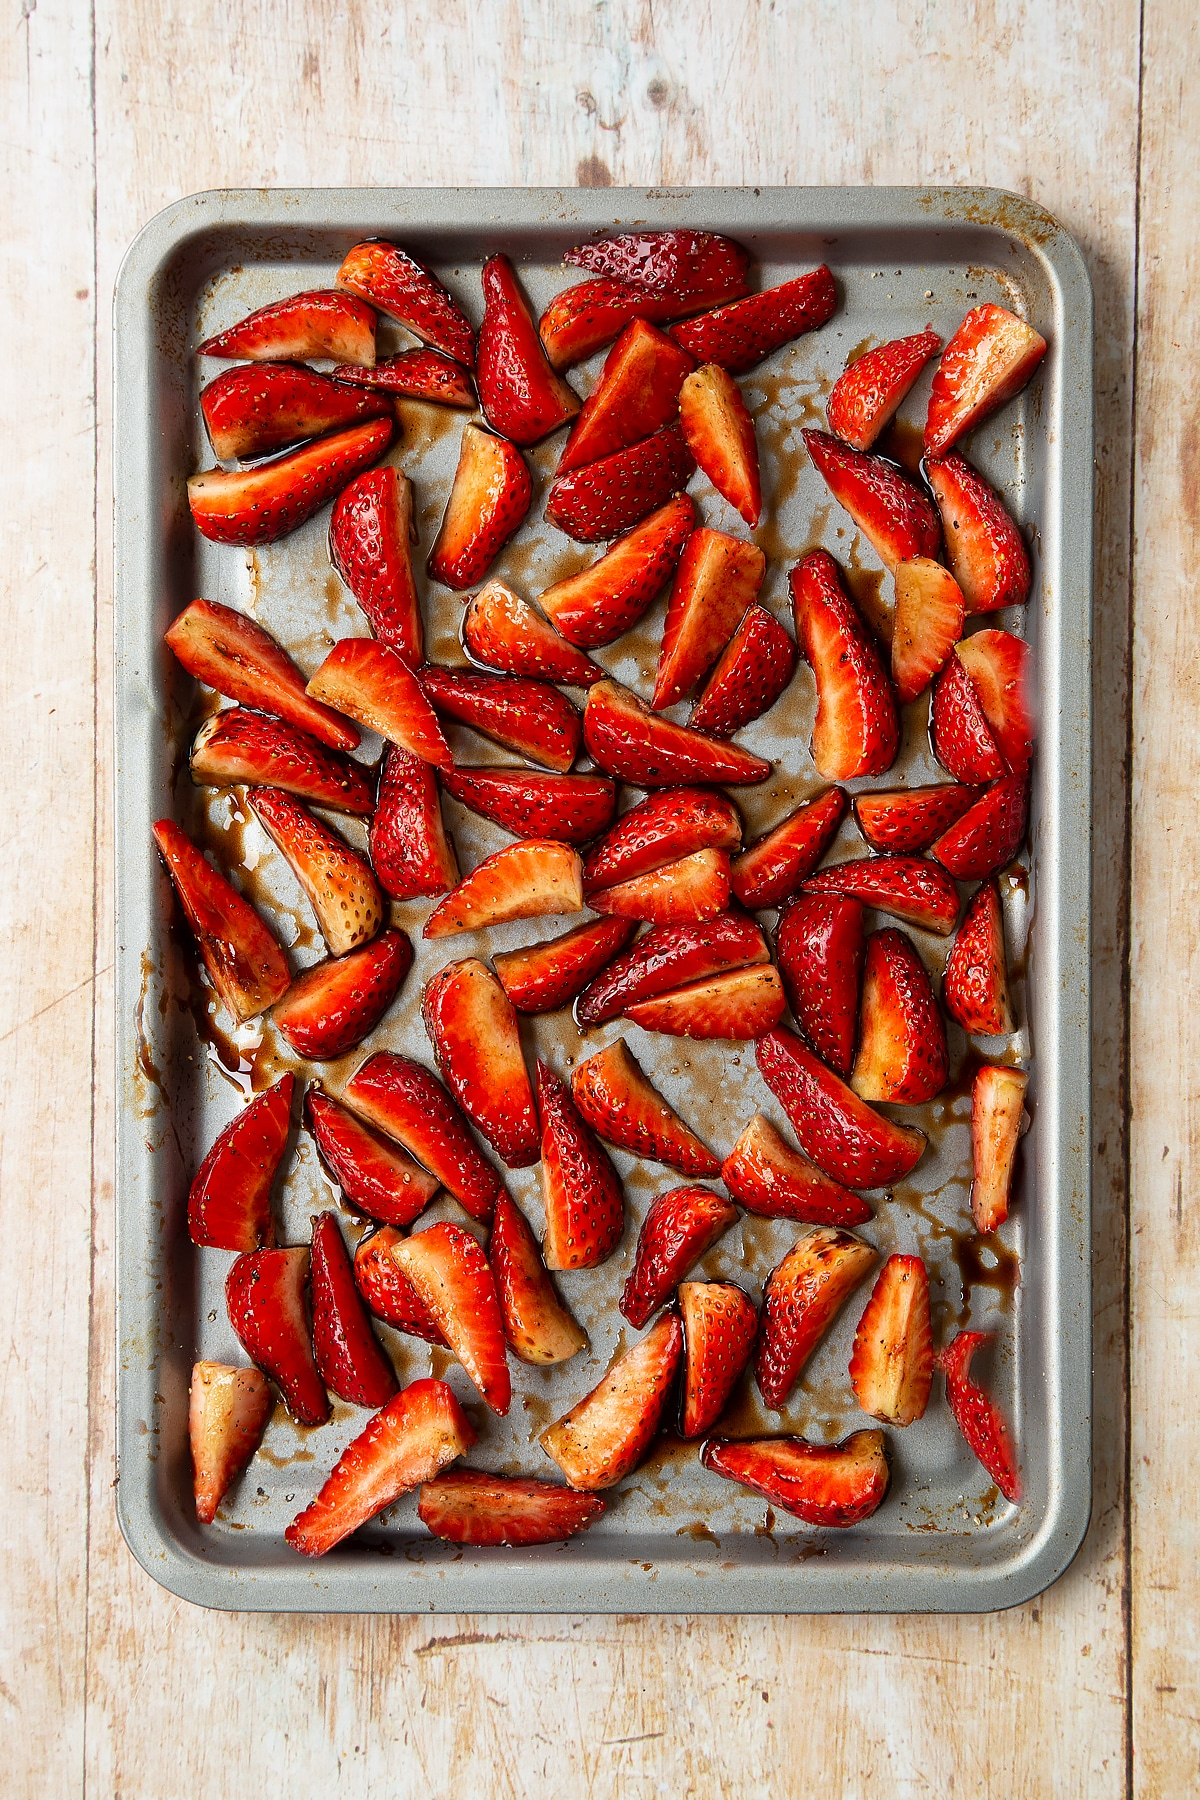 Strawberries sliced into quarters and mixed with pepper and balsamic glaze. placed on a non-stick tray.